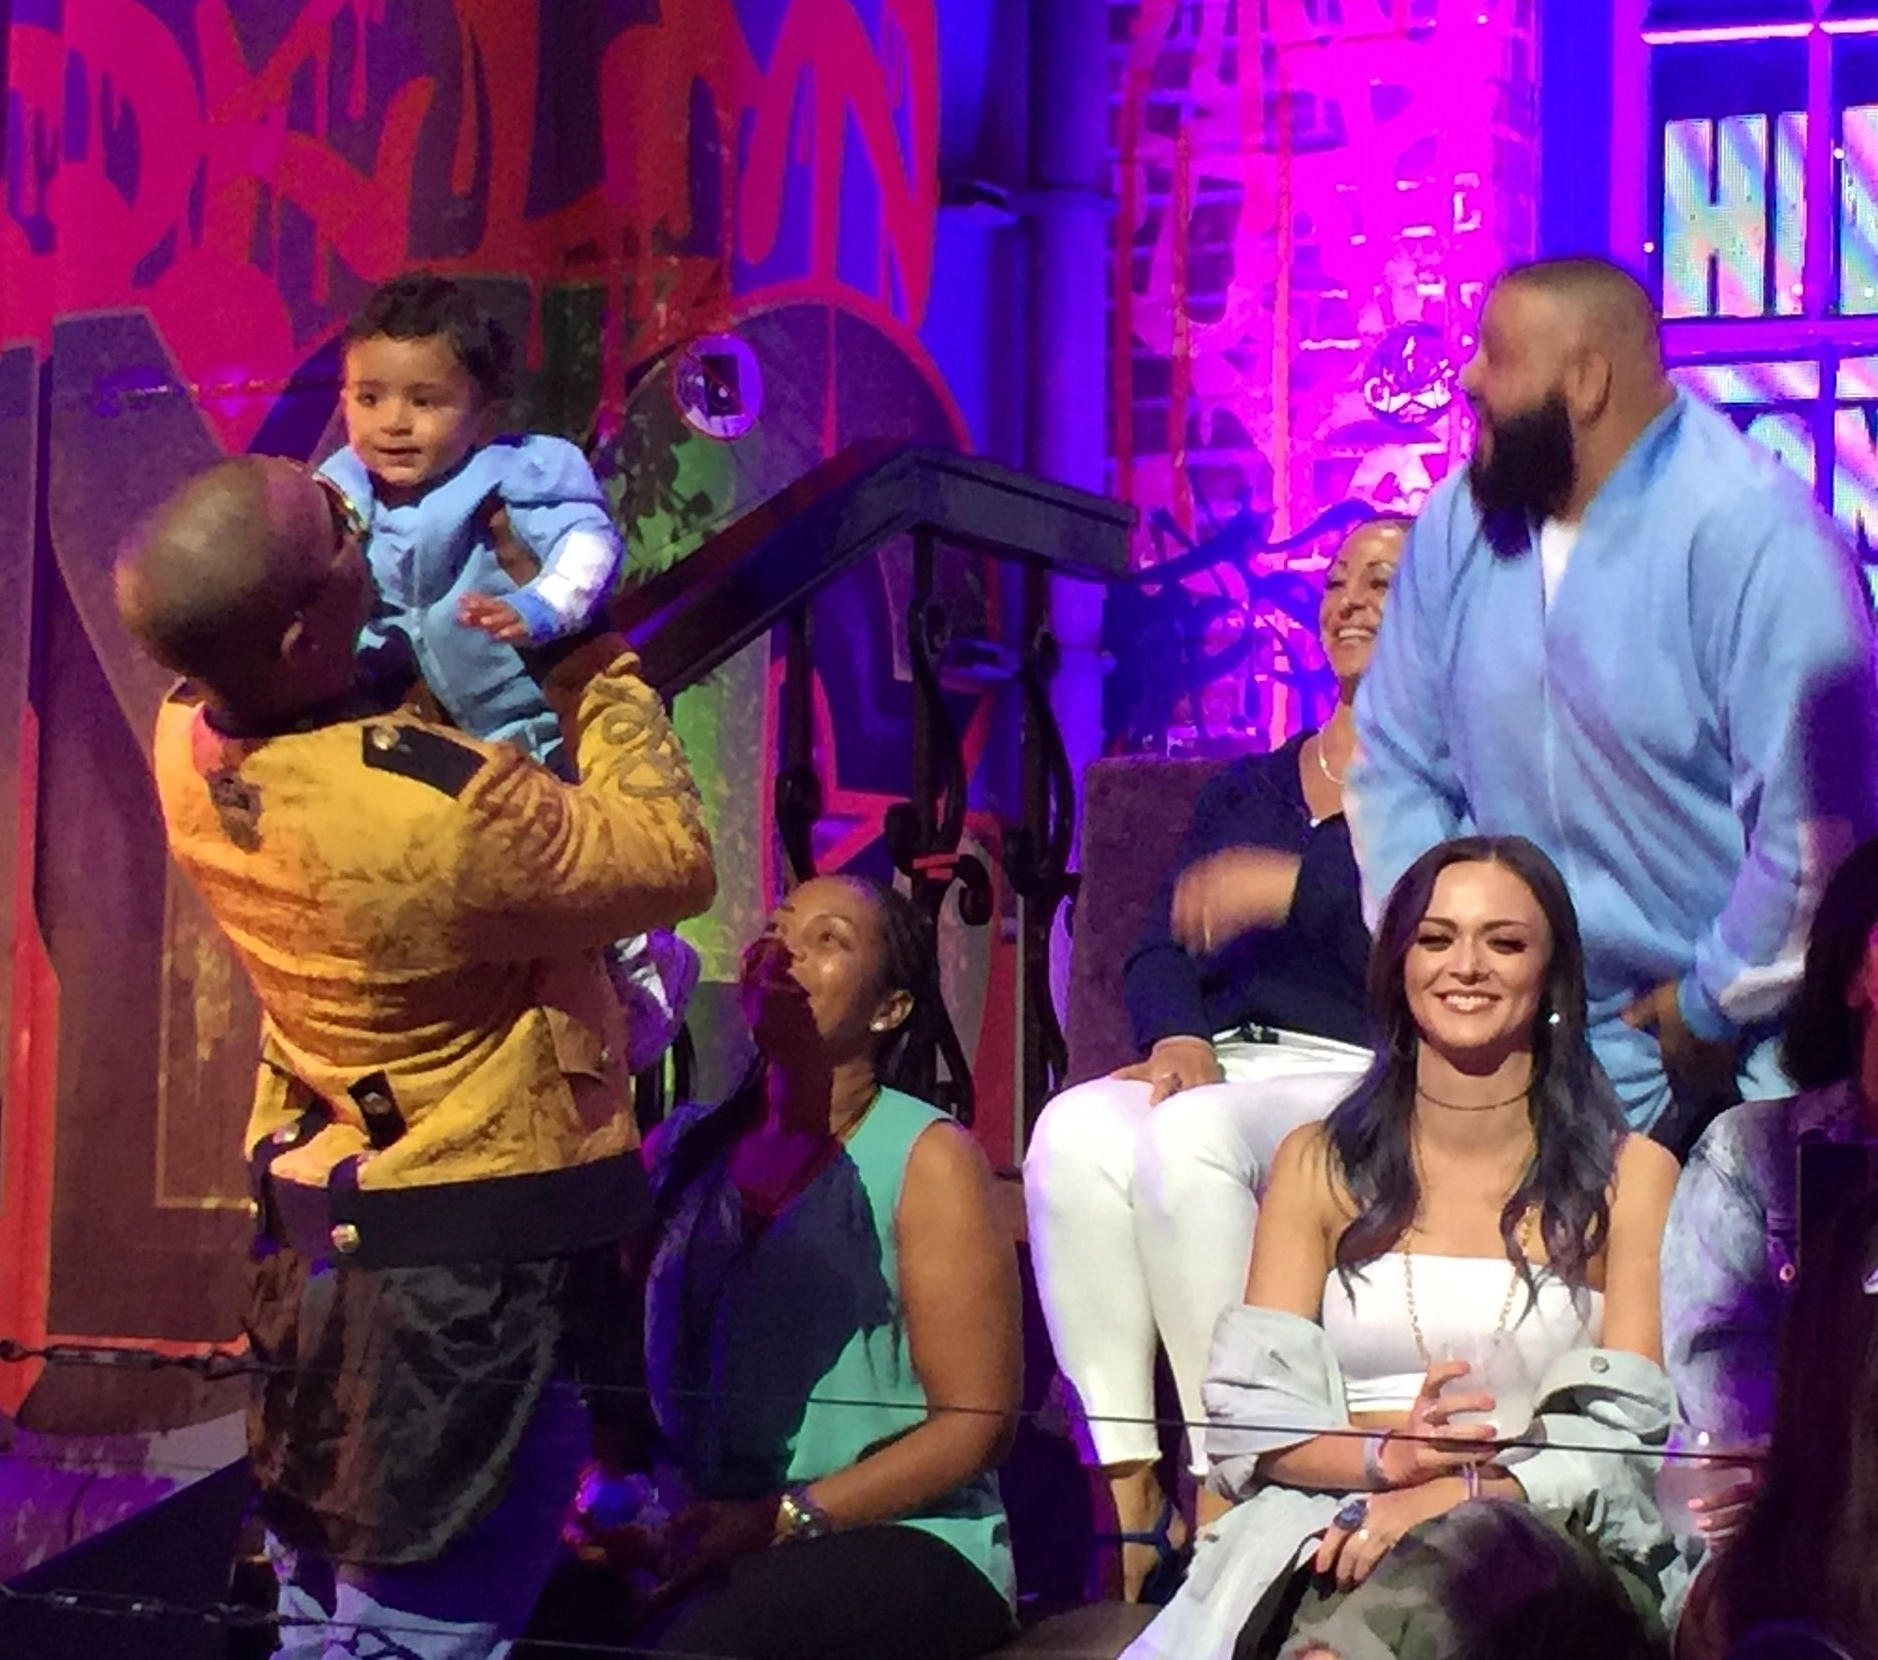 The cutest moment of the night was when T.I.walked to the audience bleachers and picked up DJ Khaled's son in his arms.